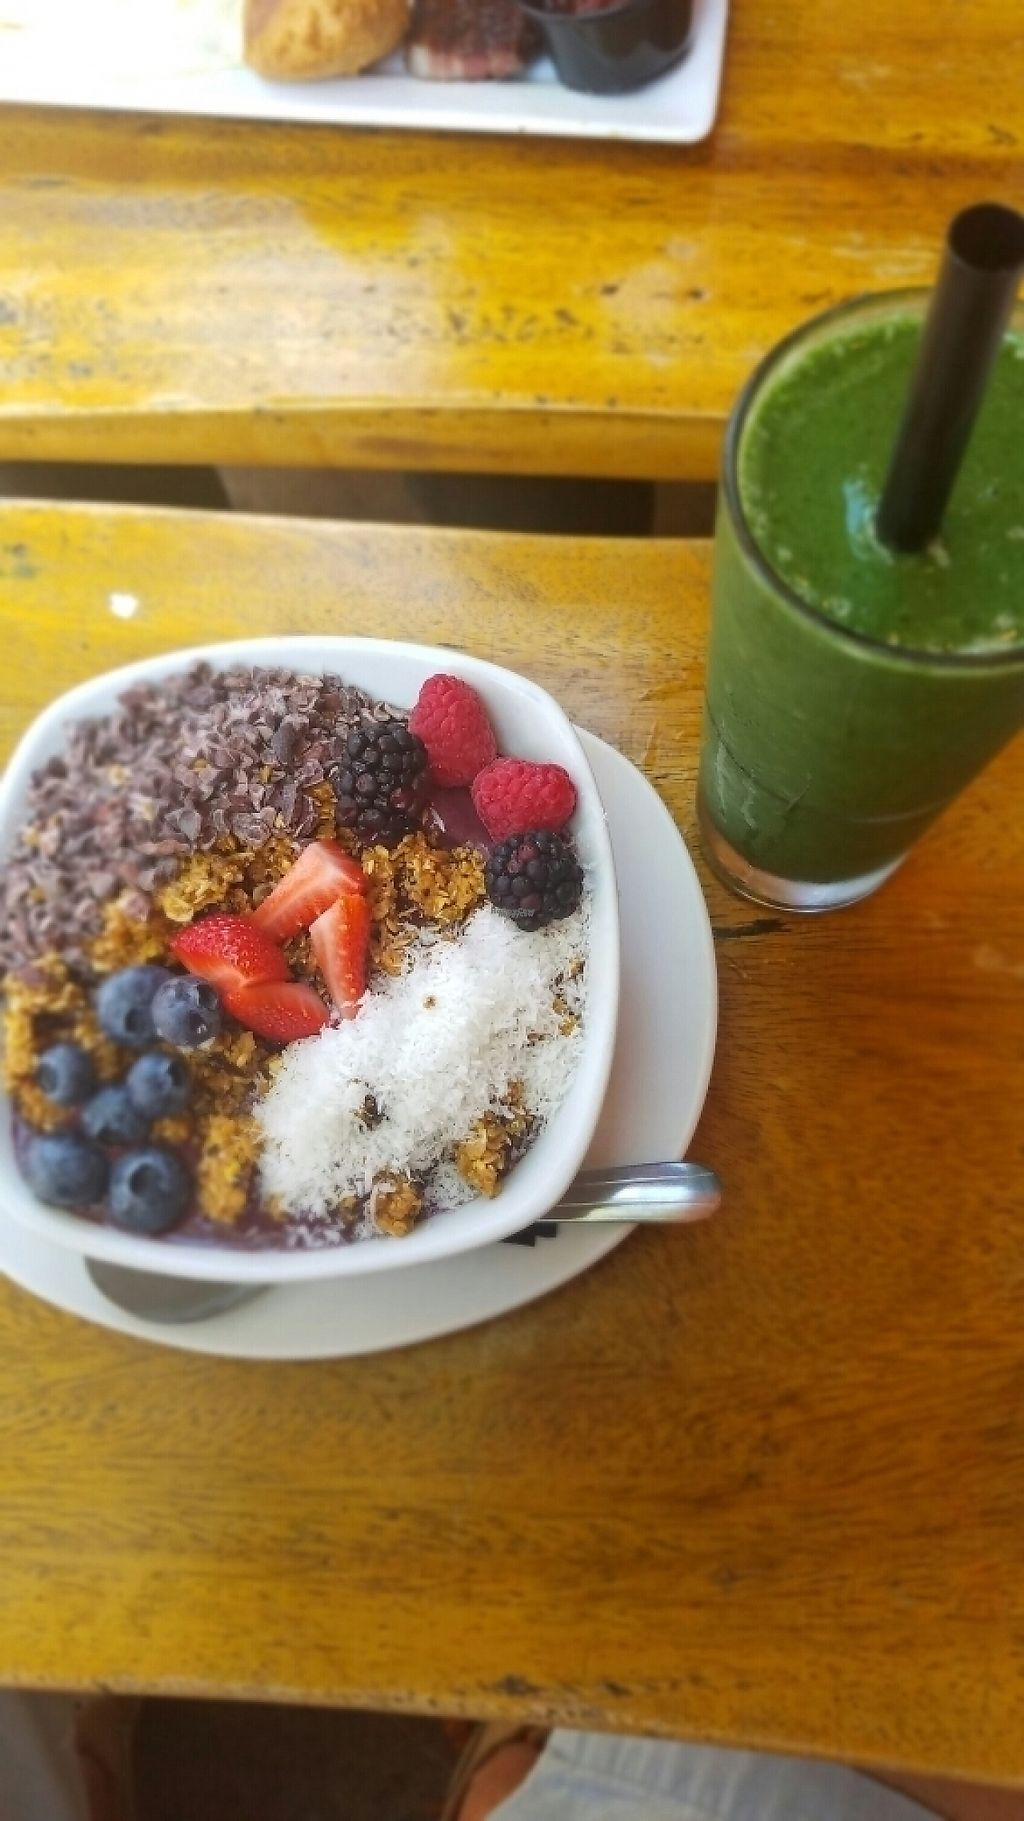 """Photo of TownHall  by <a href=""""/members/profile/GregoryTheGrape"""">GregoryTheGrape</a> <br/>Açai Bowl + Fortitude Smoothie <br/> March 14, 2017  - <a href='/contact/abuse/image/43518/236259'>Report</a>"""